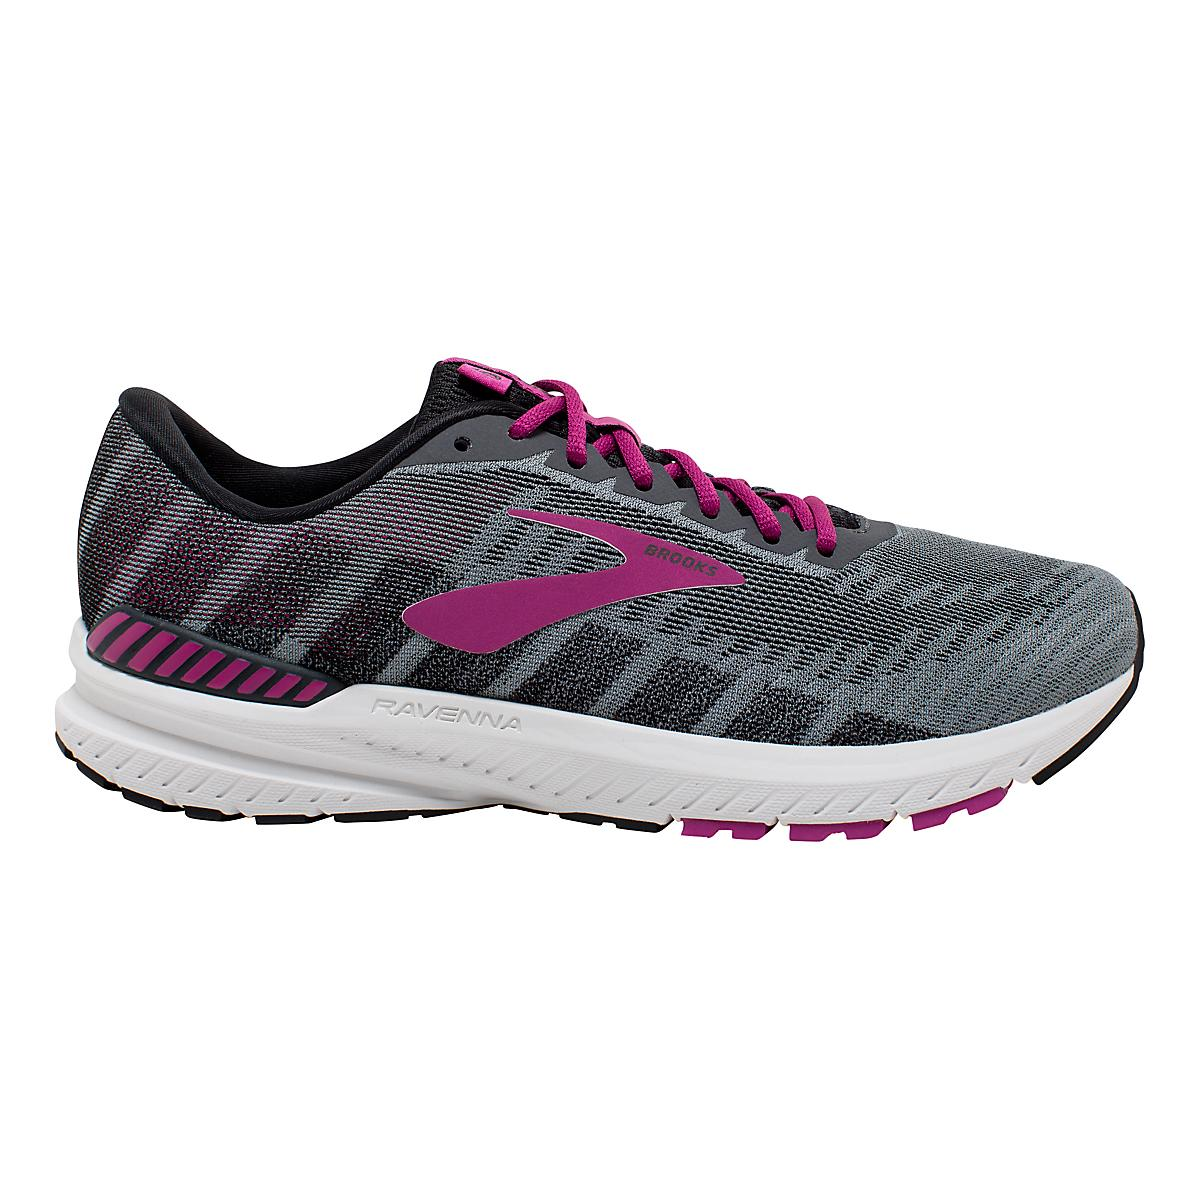 b8de7513ce5 Womens Brooks Ravenna 10 Running Shoe at Road Runner Sports